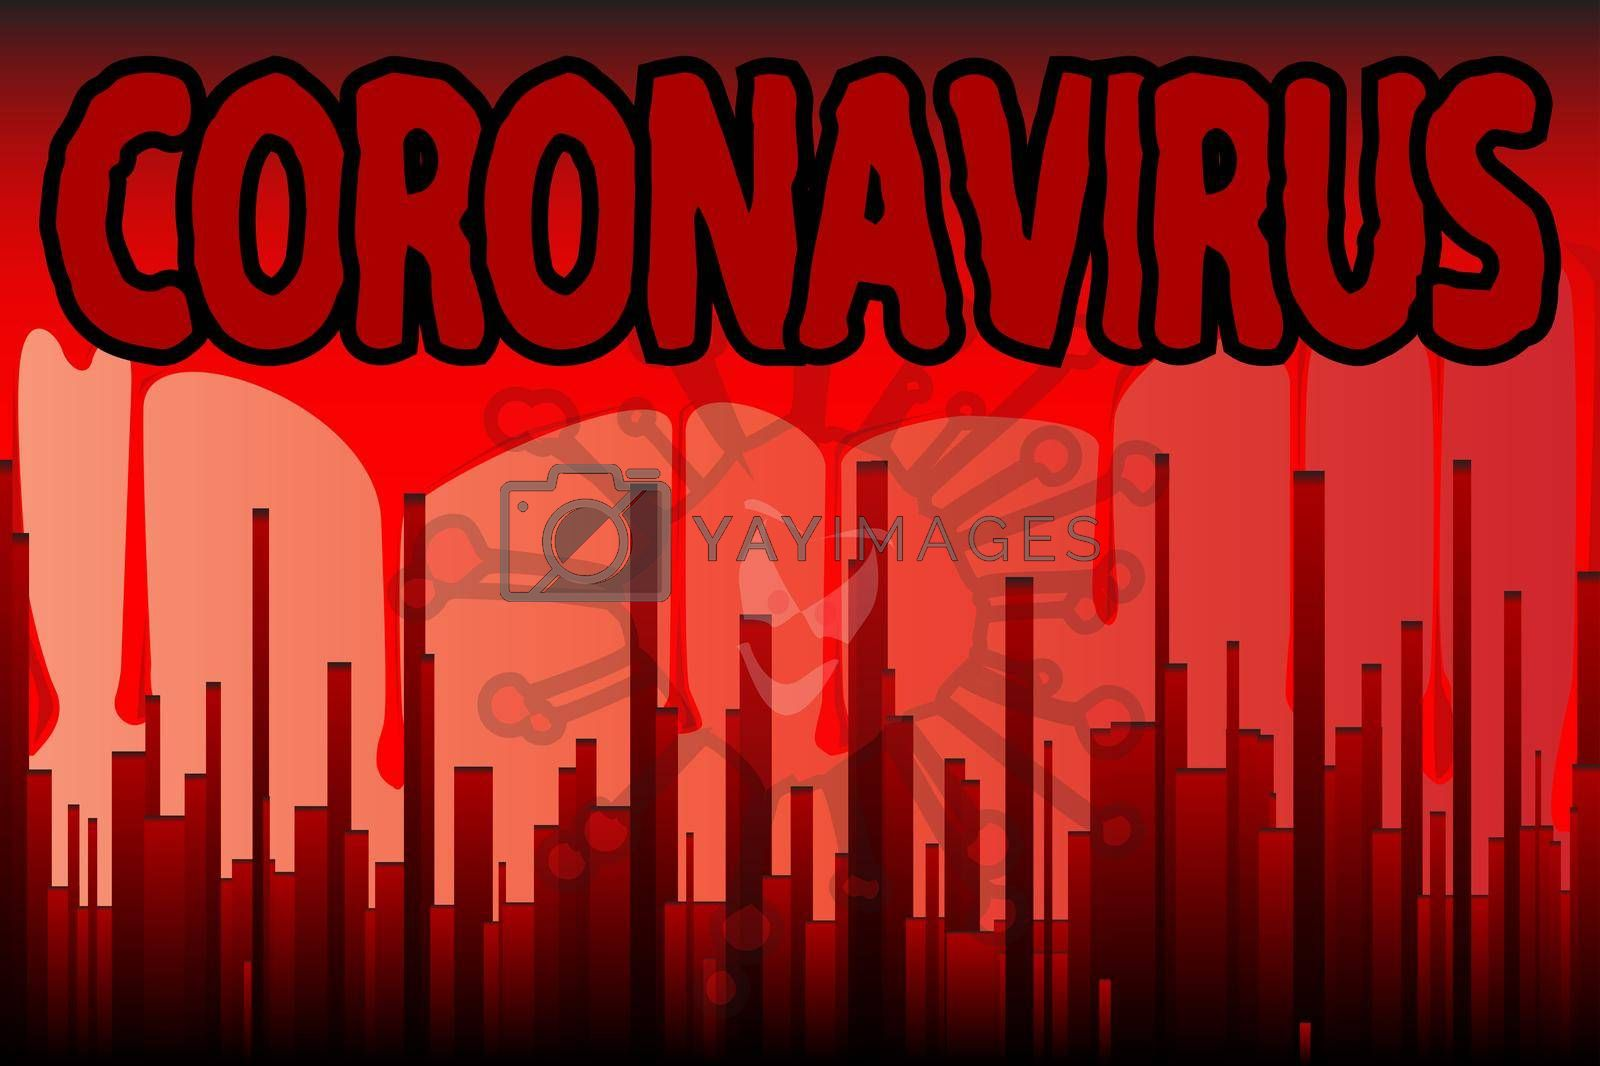 A grunge cityscape in blood red with a backdrop of running blood with the text Coronavirus